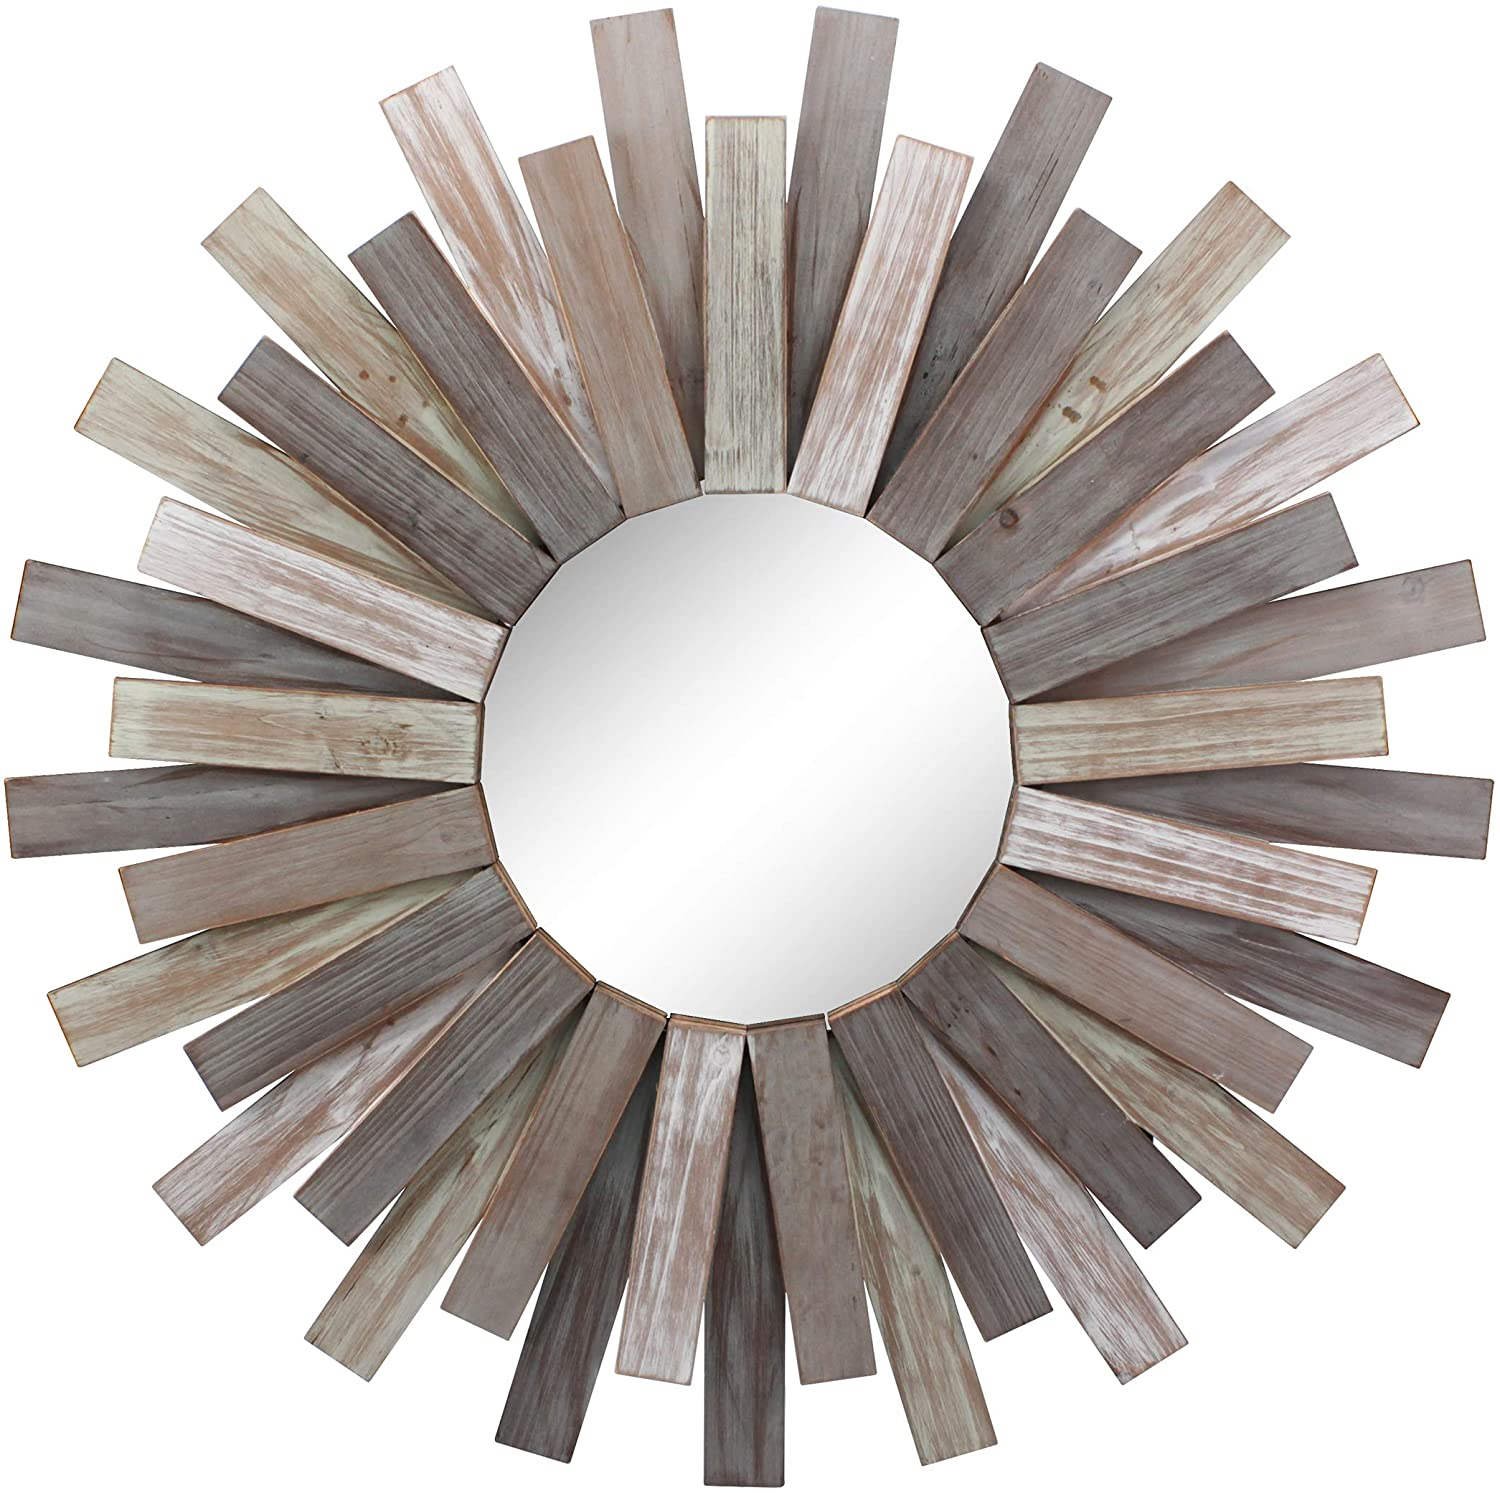 Stonebriar Large Round 32 Wooden Sunburst Hanging Wall Mirror With Attached Hanging Bracket Decorative Rustic Decor For The Living Room Bathroom Bedroom And Entryway Home Kitchen